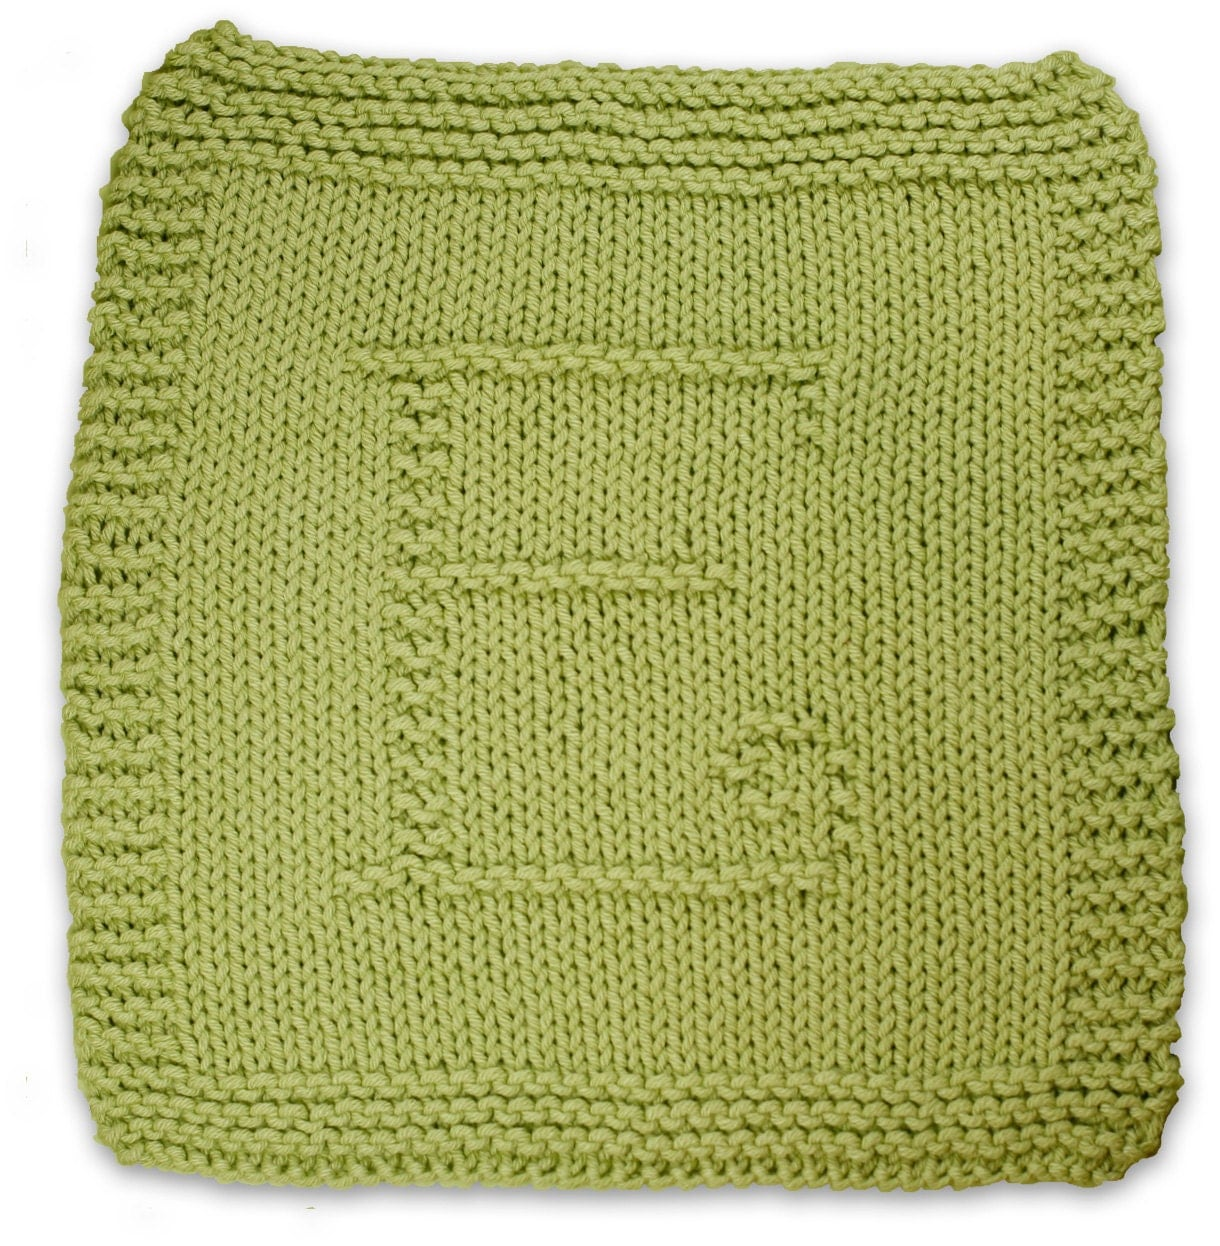 Knitting Cursive Letters : Initial knitting patterns a pdf collection of dishcloth